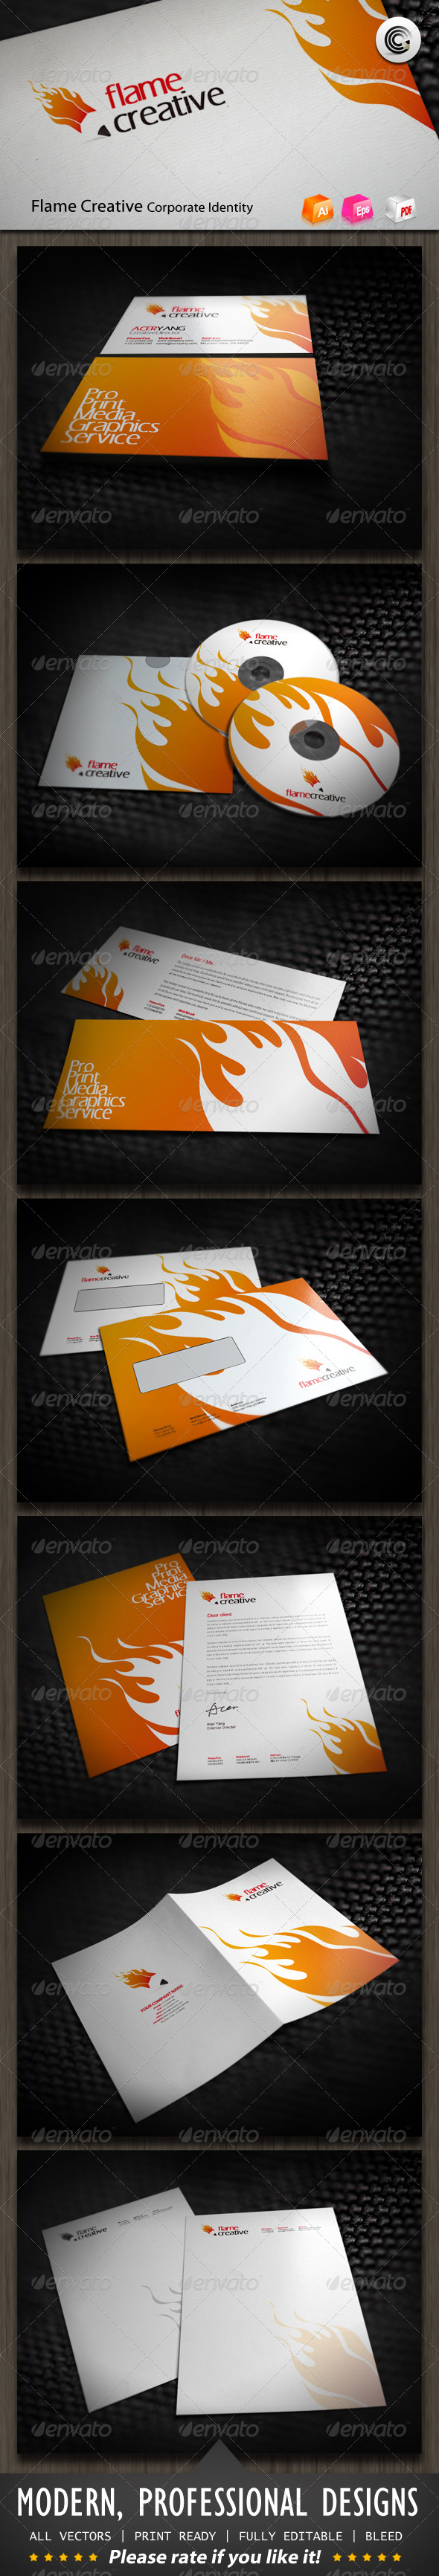 Flame Creative Corporate Identity - Stationery Print Templates